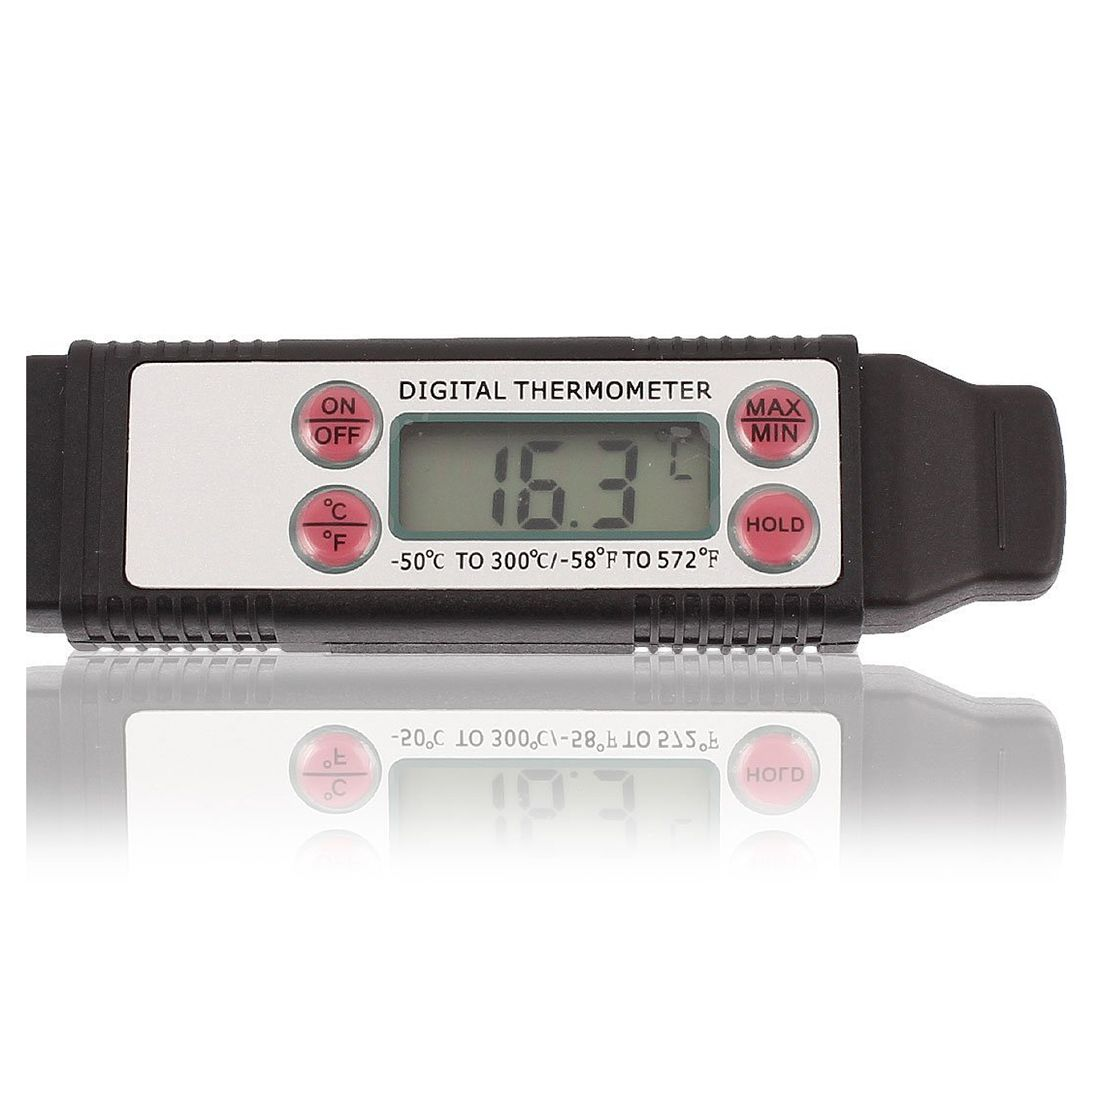 NFLC-12CM Probe Quick-Read Digital Cooking BBQ Meat Food Thermometer Black